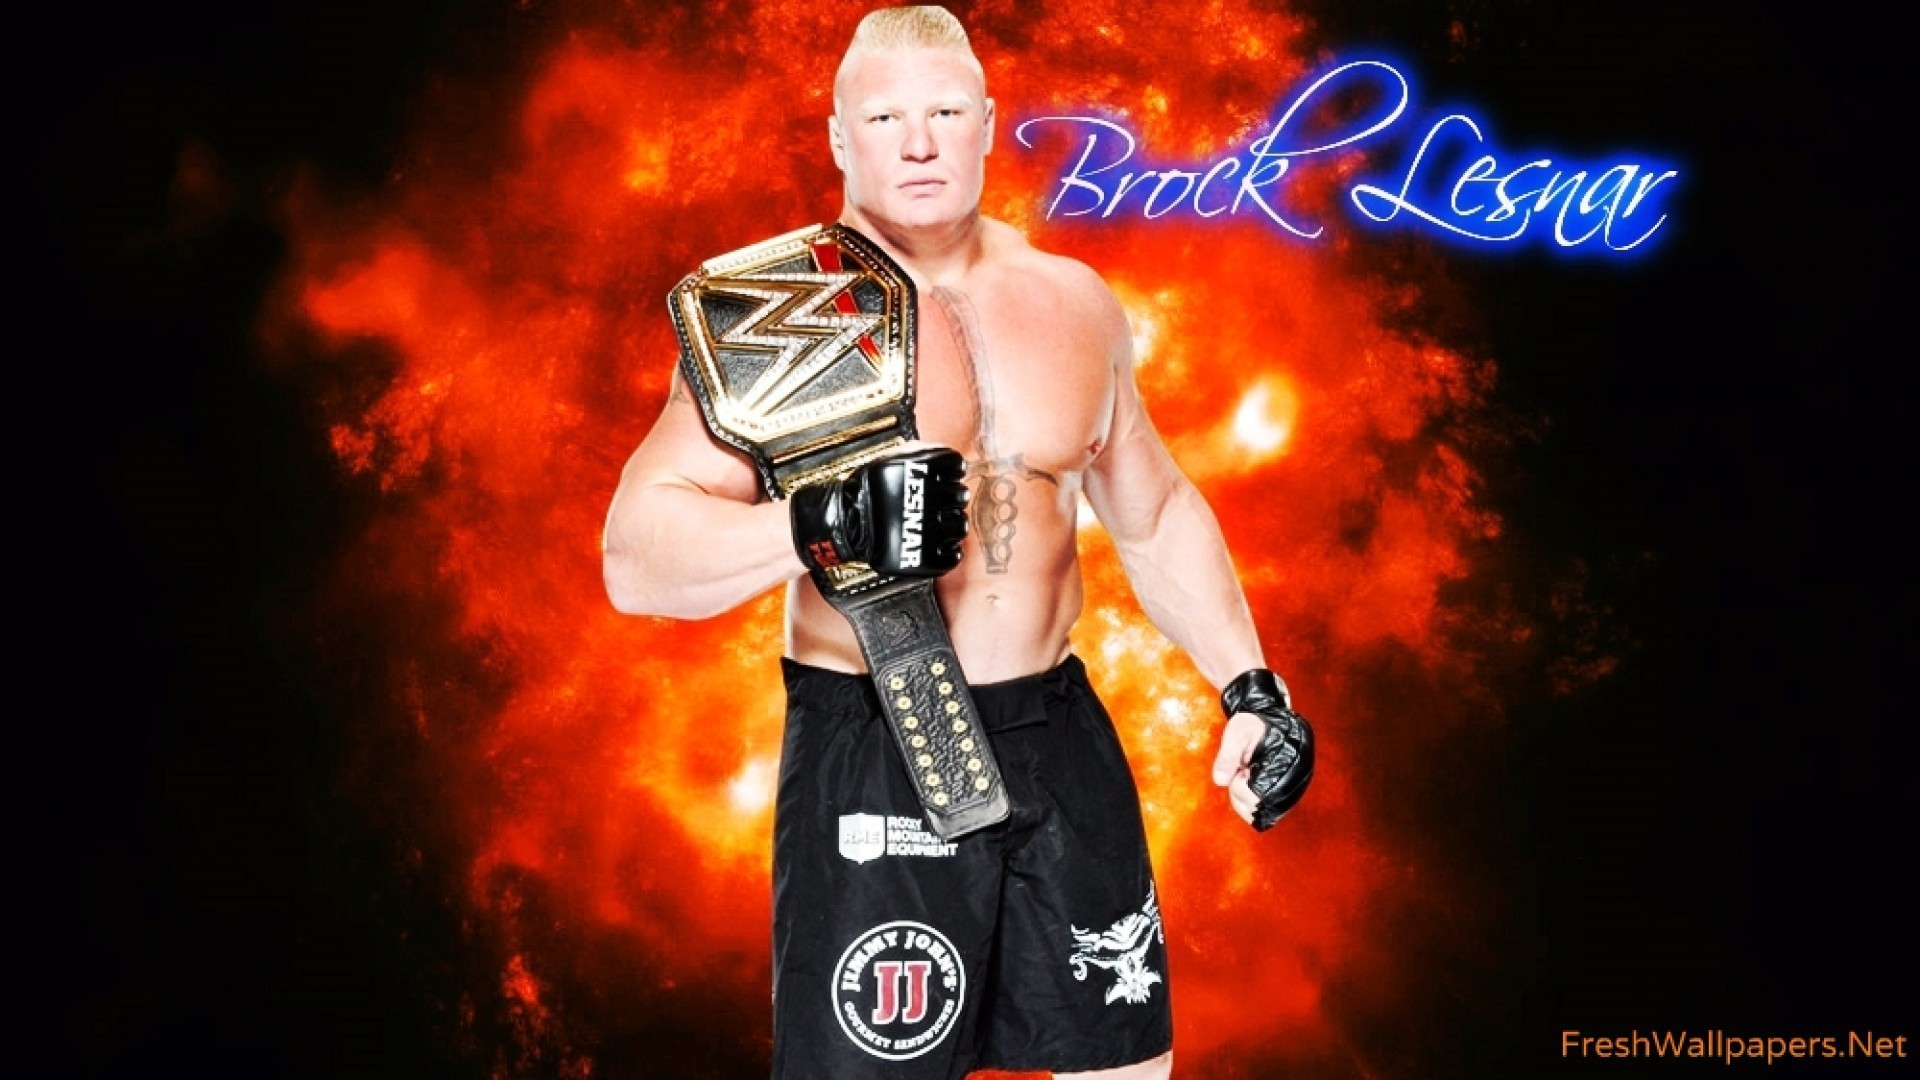 wwe brock lesnar f5 wallpaper hd posted by ethan anderson wwe brock lesnar f5 wallpaper hd posted